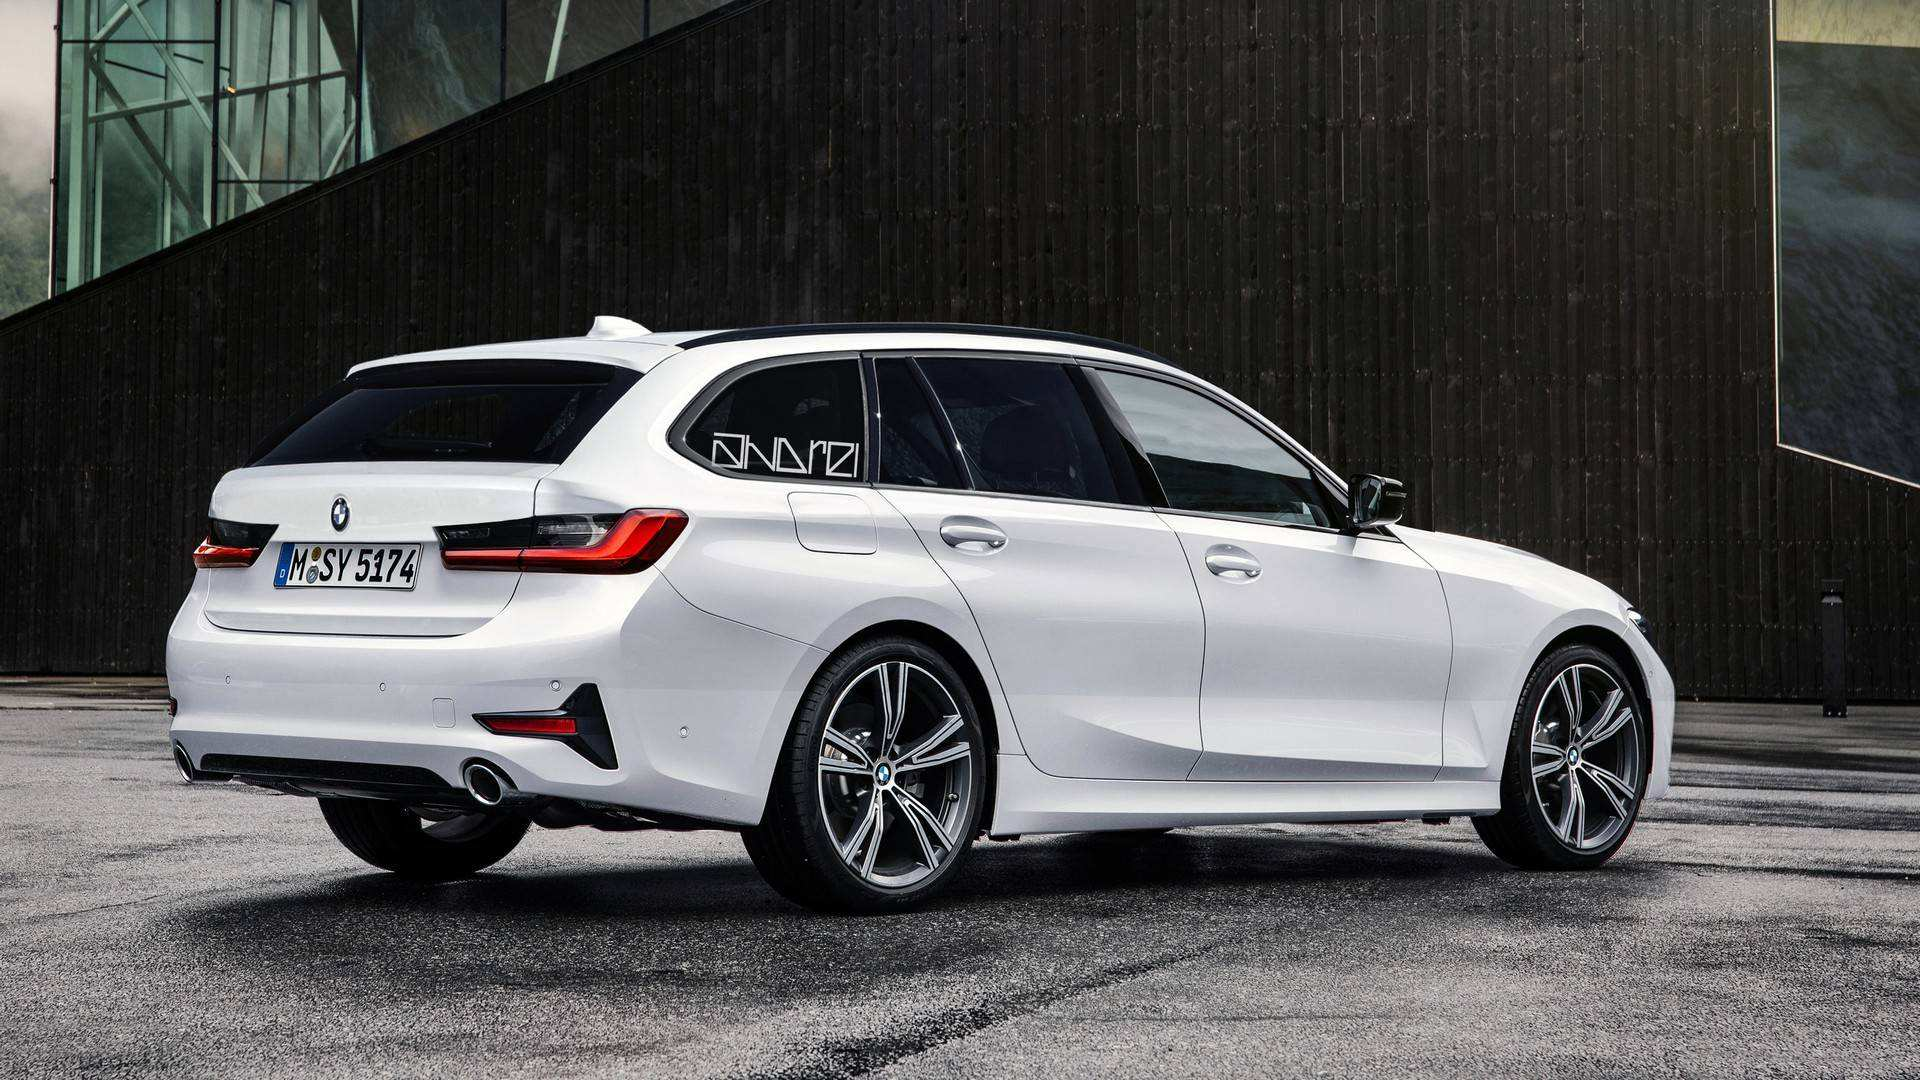 19 New 2020 Bmw Sport Wagon Overview by 2020 Bmw Sport Wagon